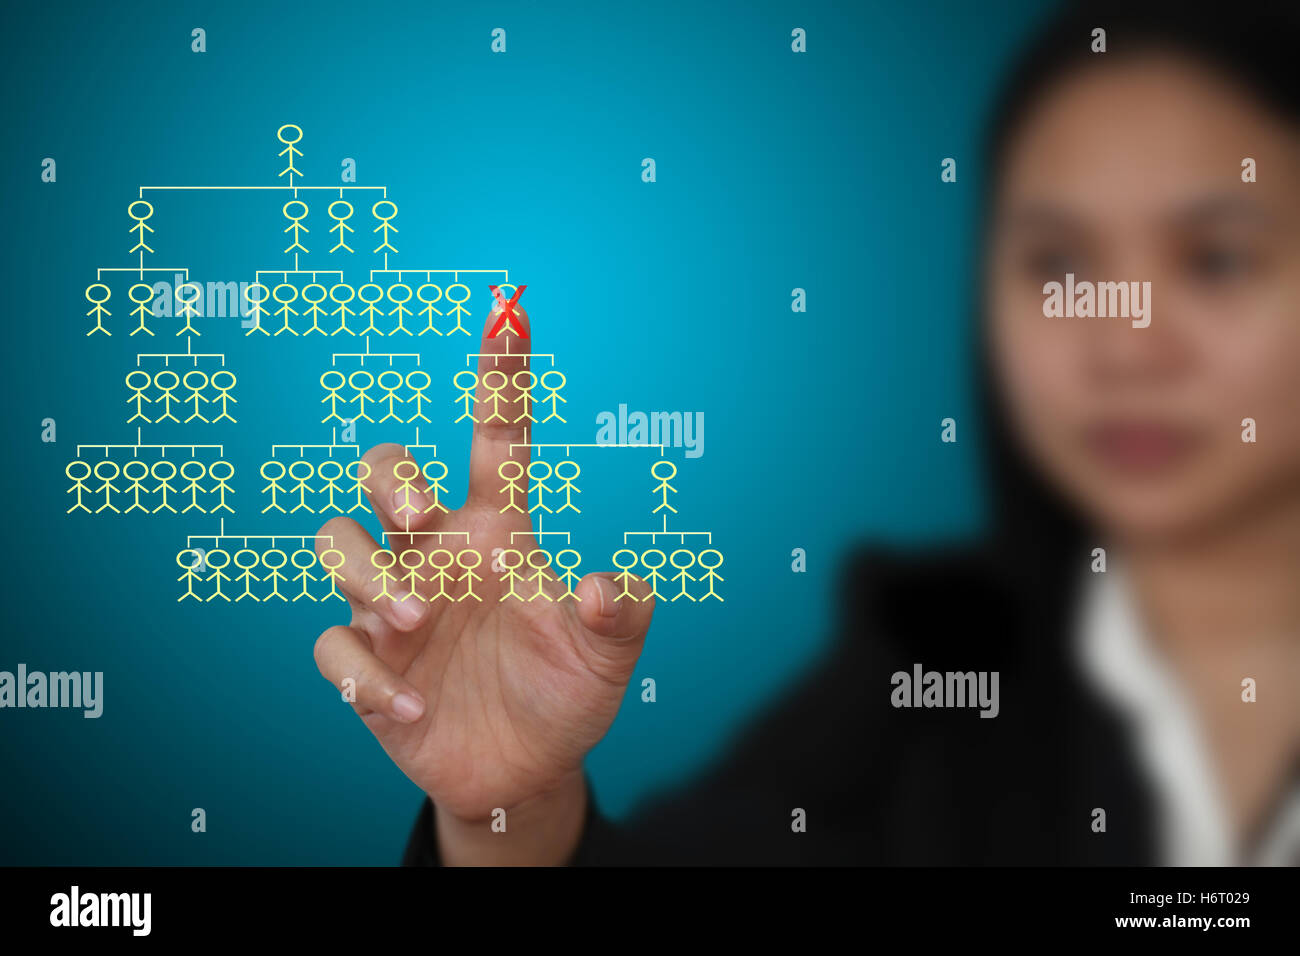 business concepts - Stock Image